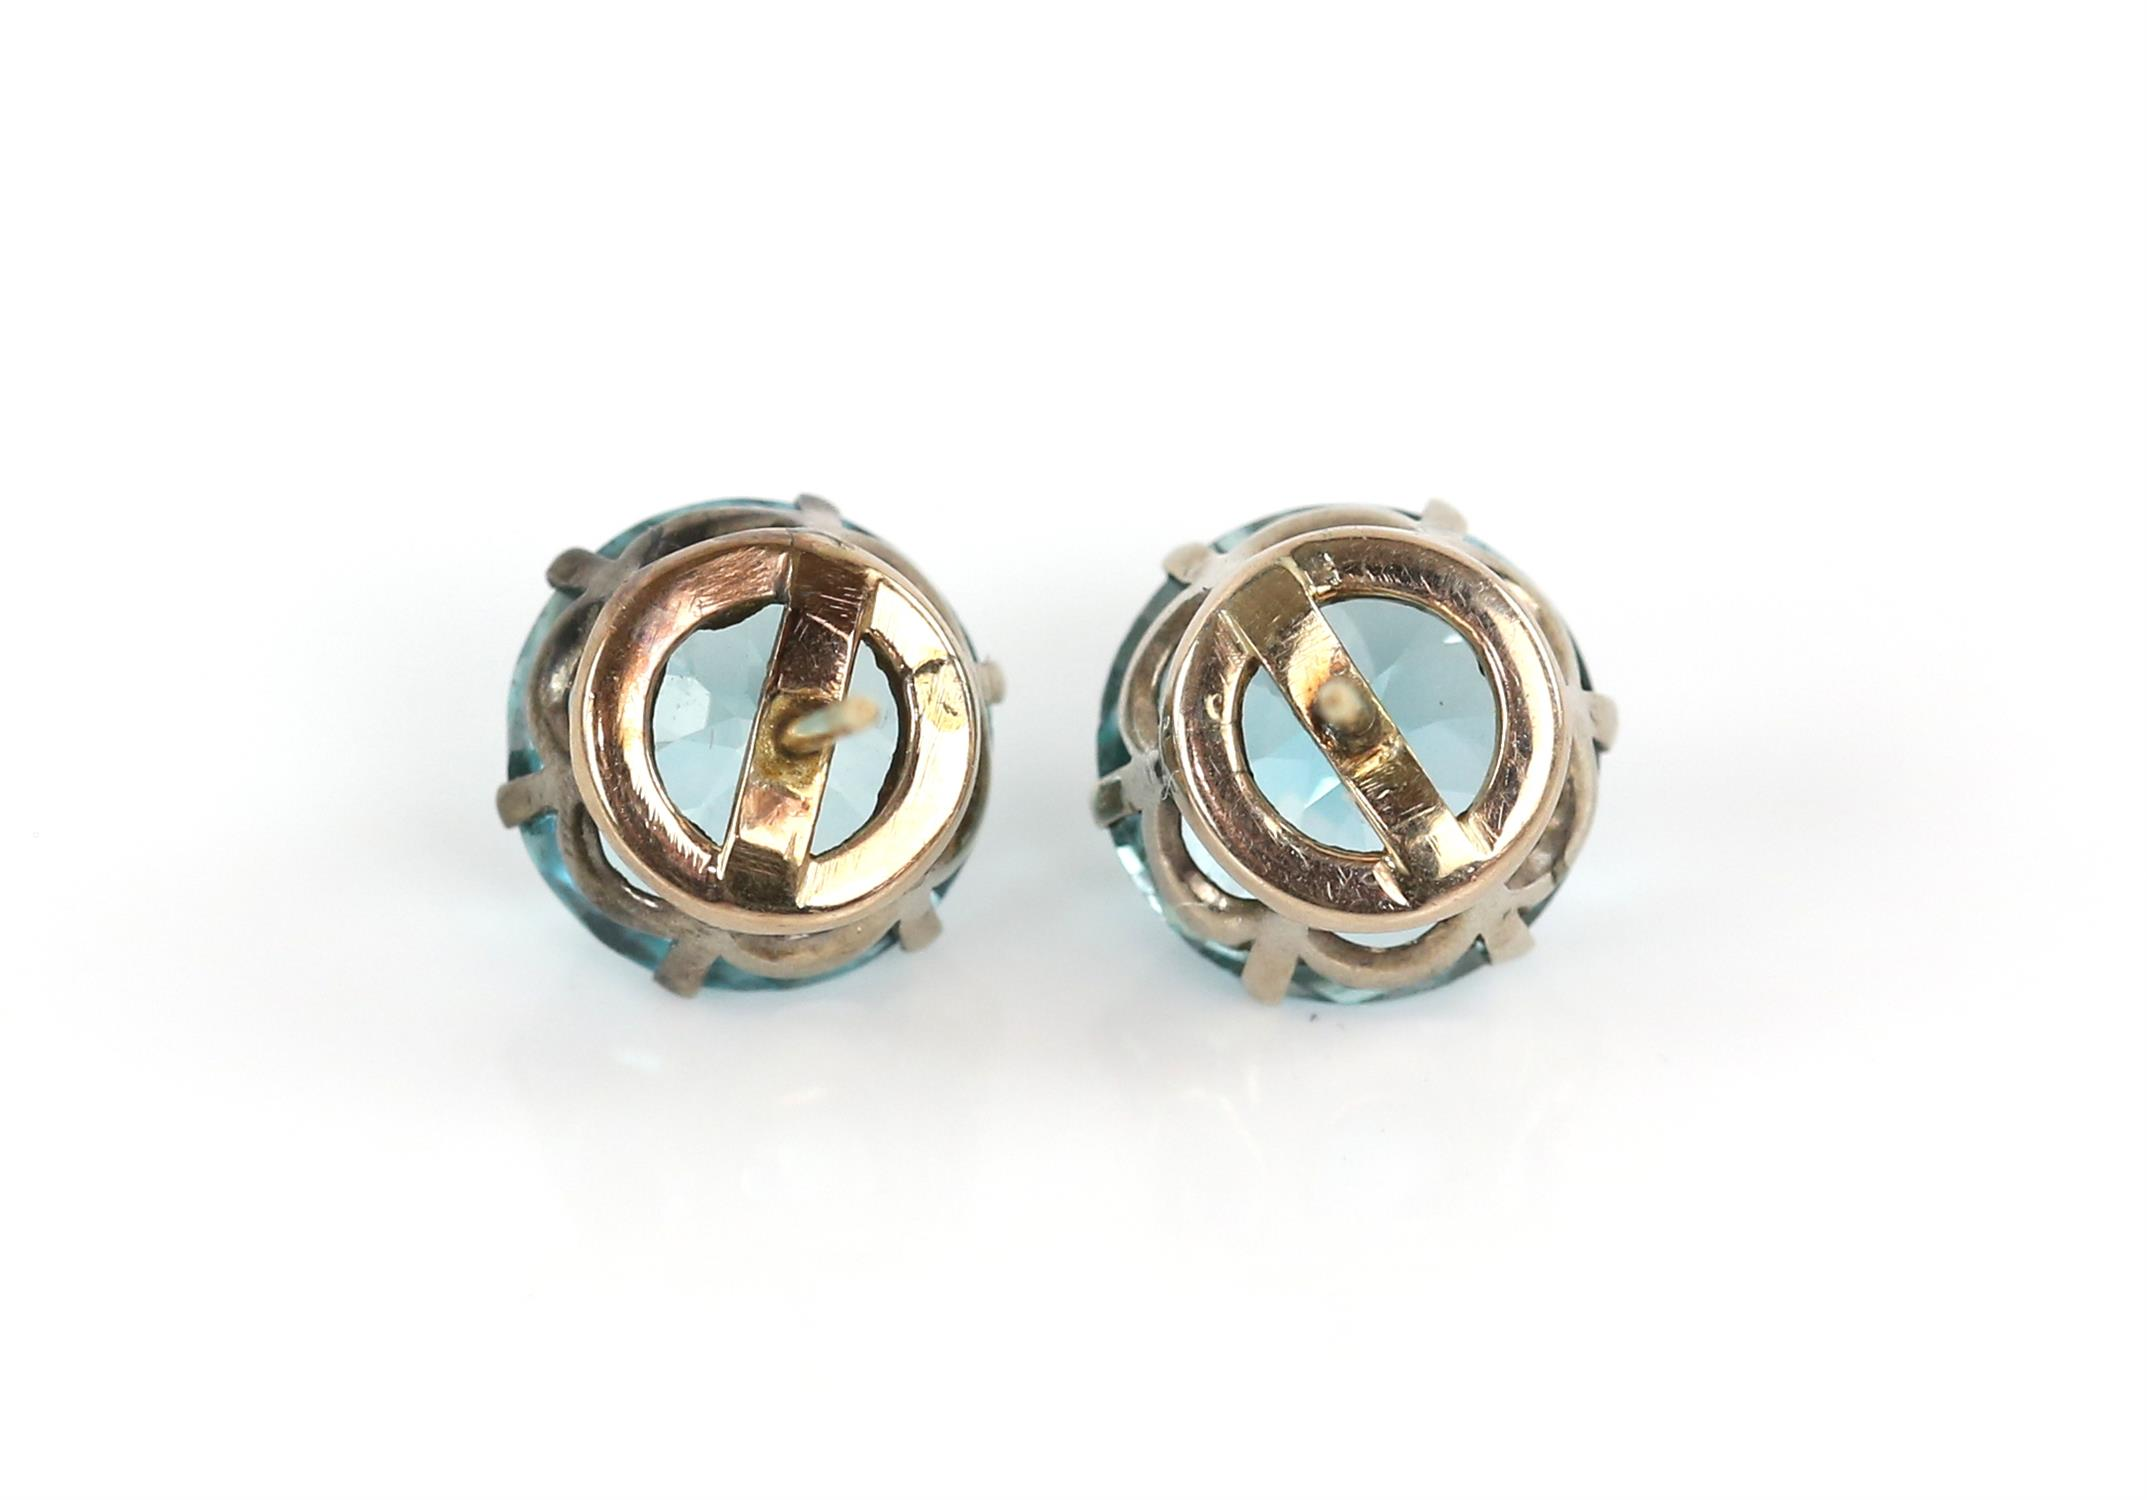 Early 19th Century blue Zircon earrings, old cut zircons, estimated total weight 14.79 carats, - Image 4 of 4